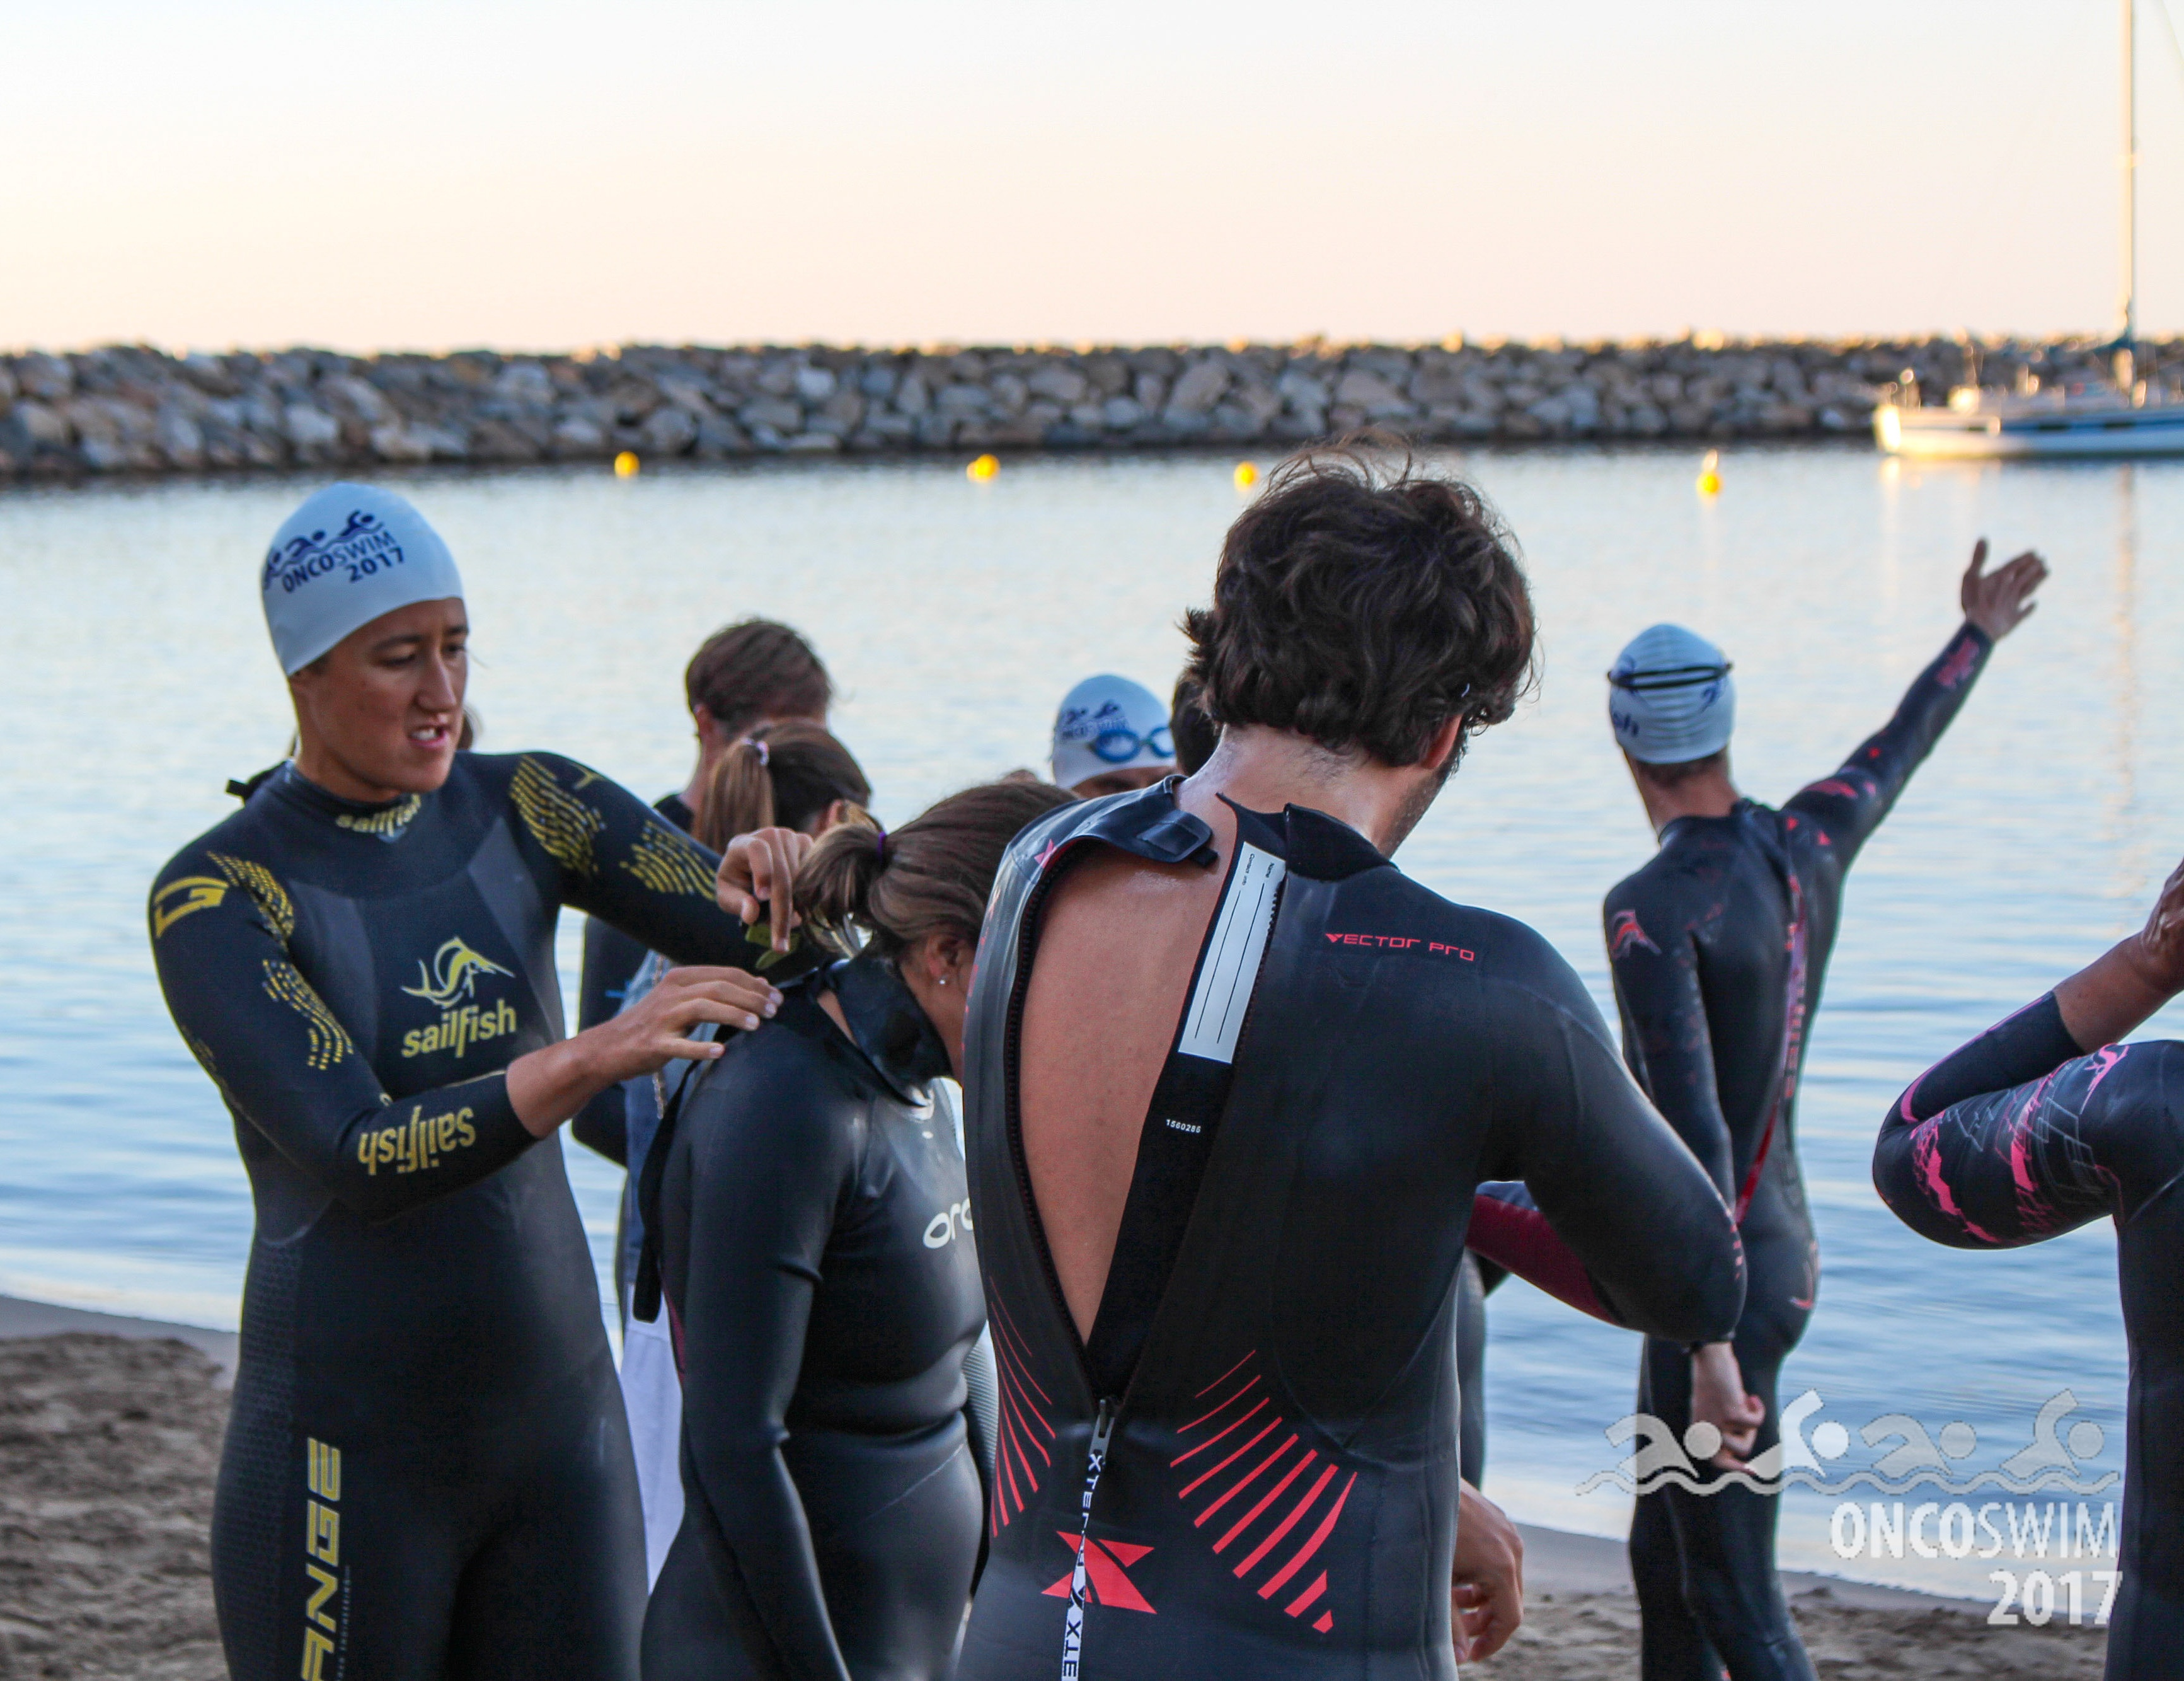 La OncoSwim 2018 será el 2 de junio. Save the date!